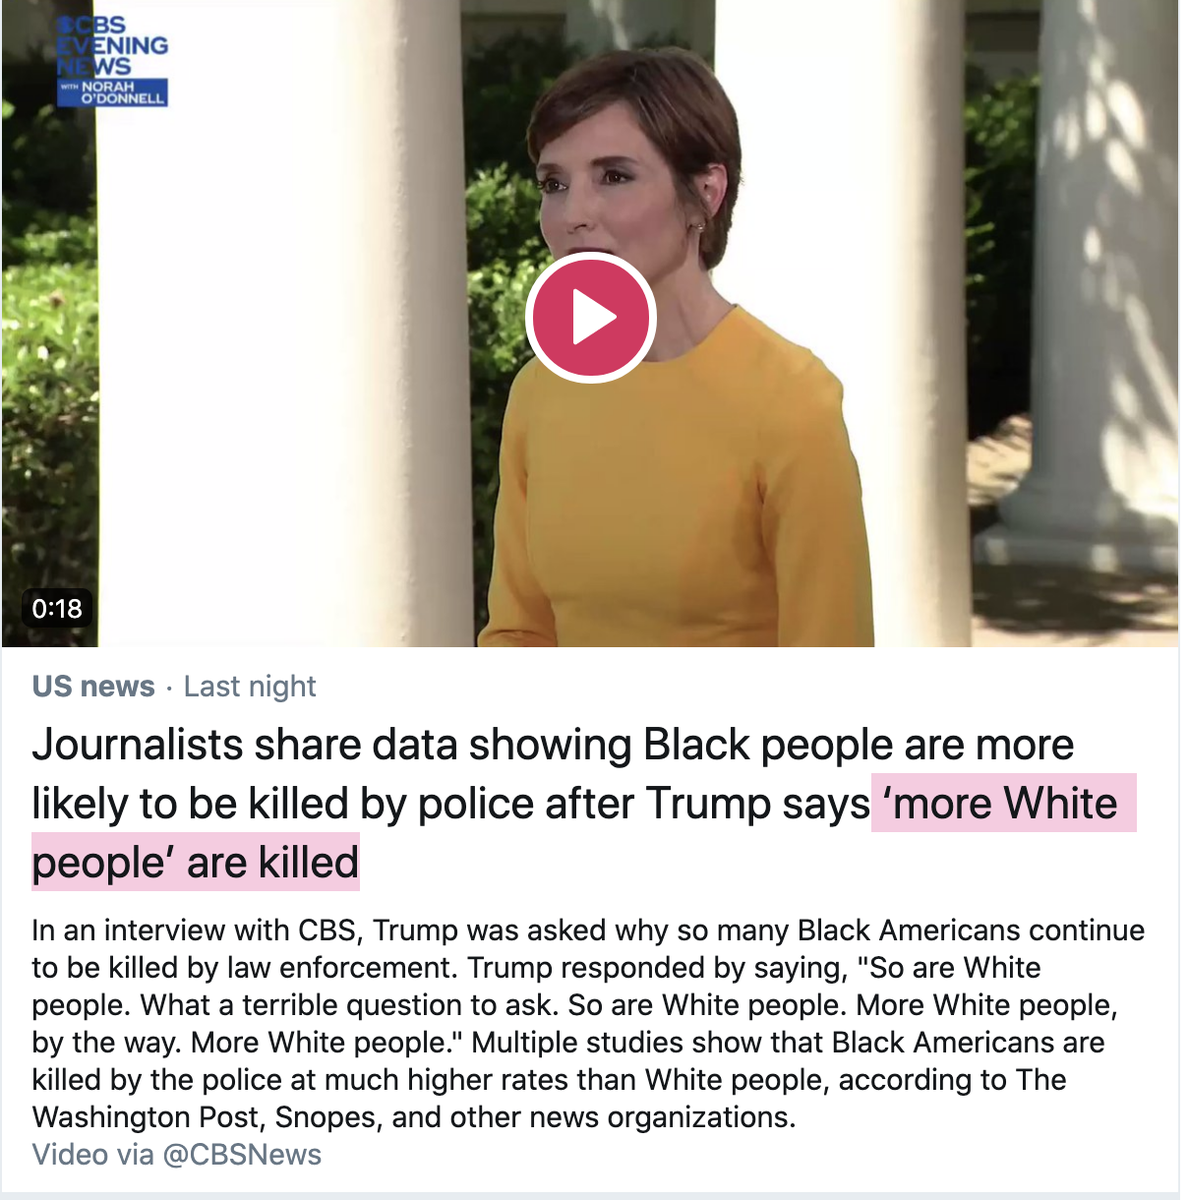 OMG, shut up Trump wasnt wrong, more whites are killed by police, but the media is also right in that black people are more likely when one takes into account population statistics. The media is taking a separate argument to oppose another, but really, both sides are right.